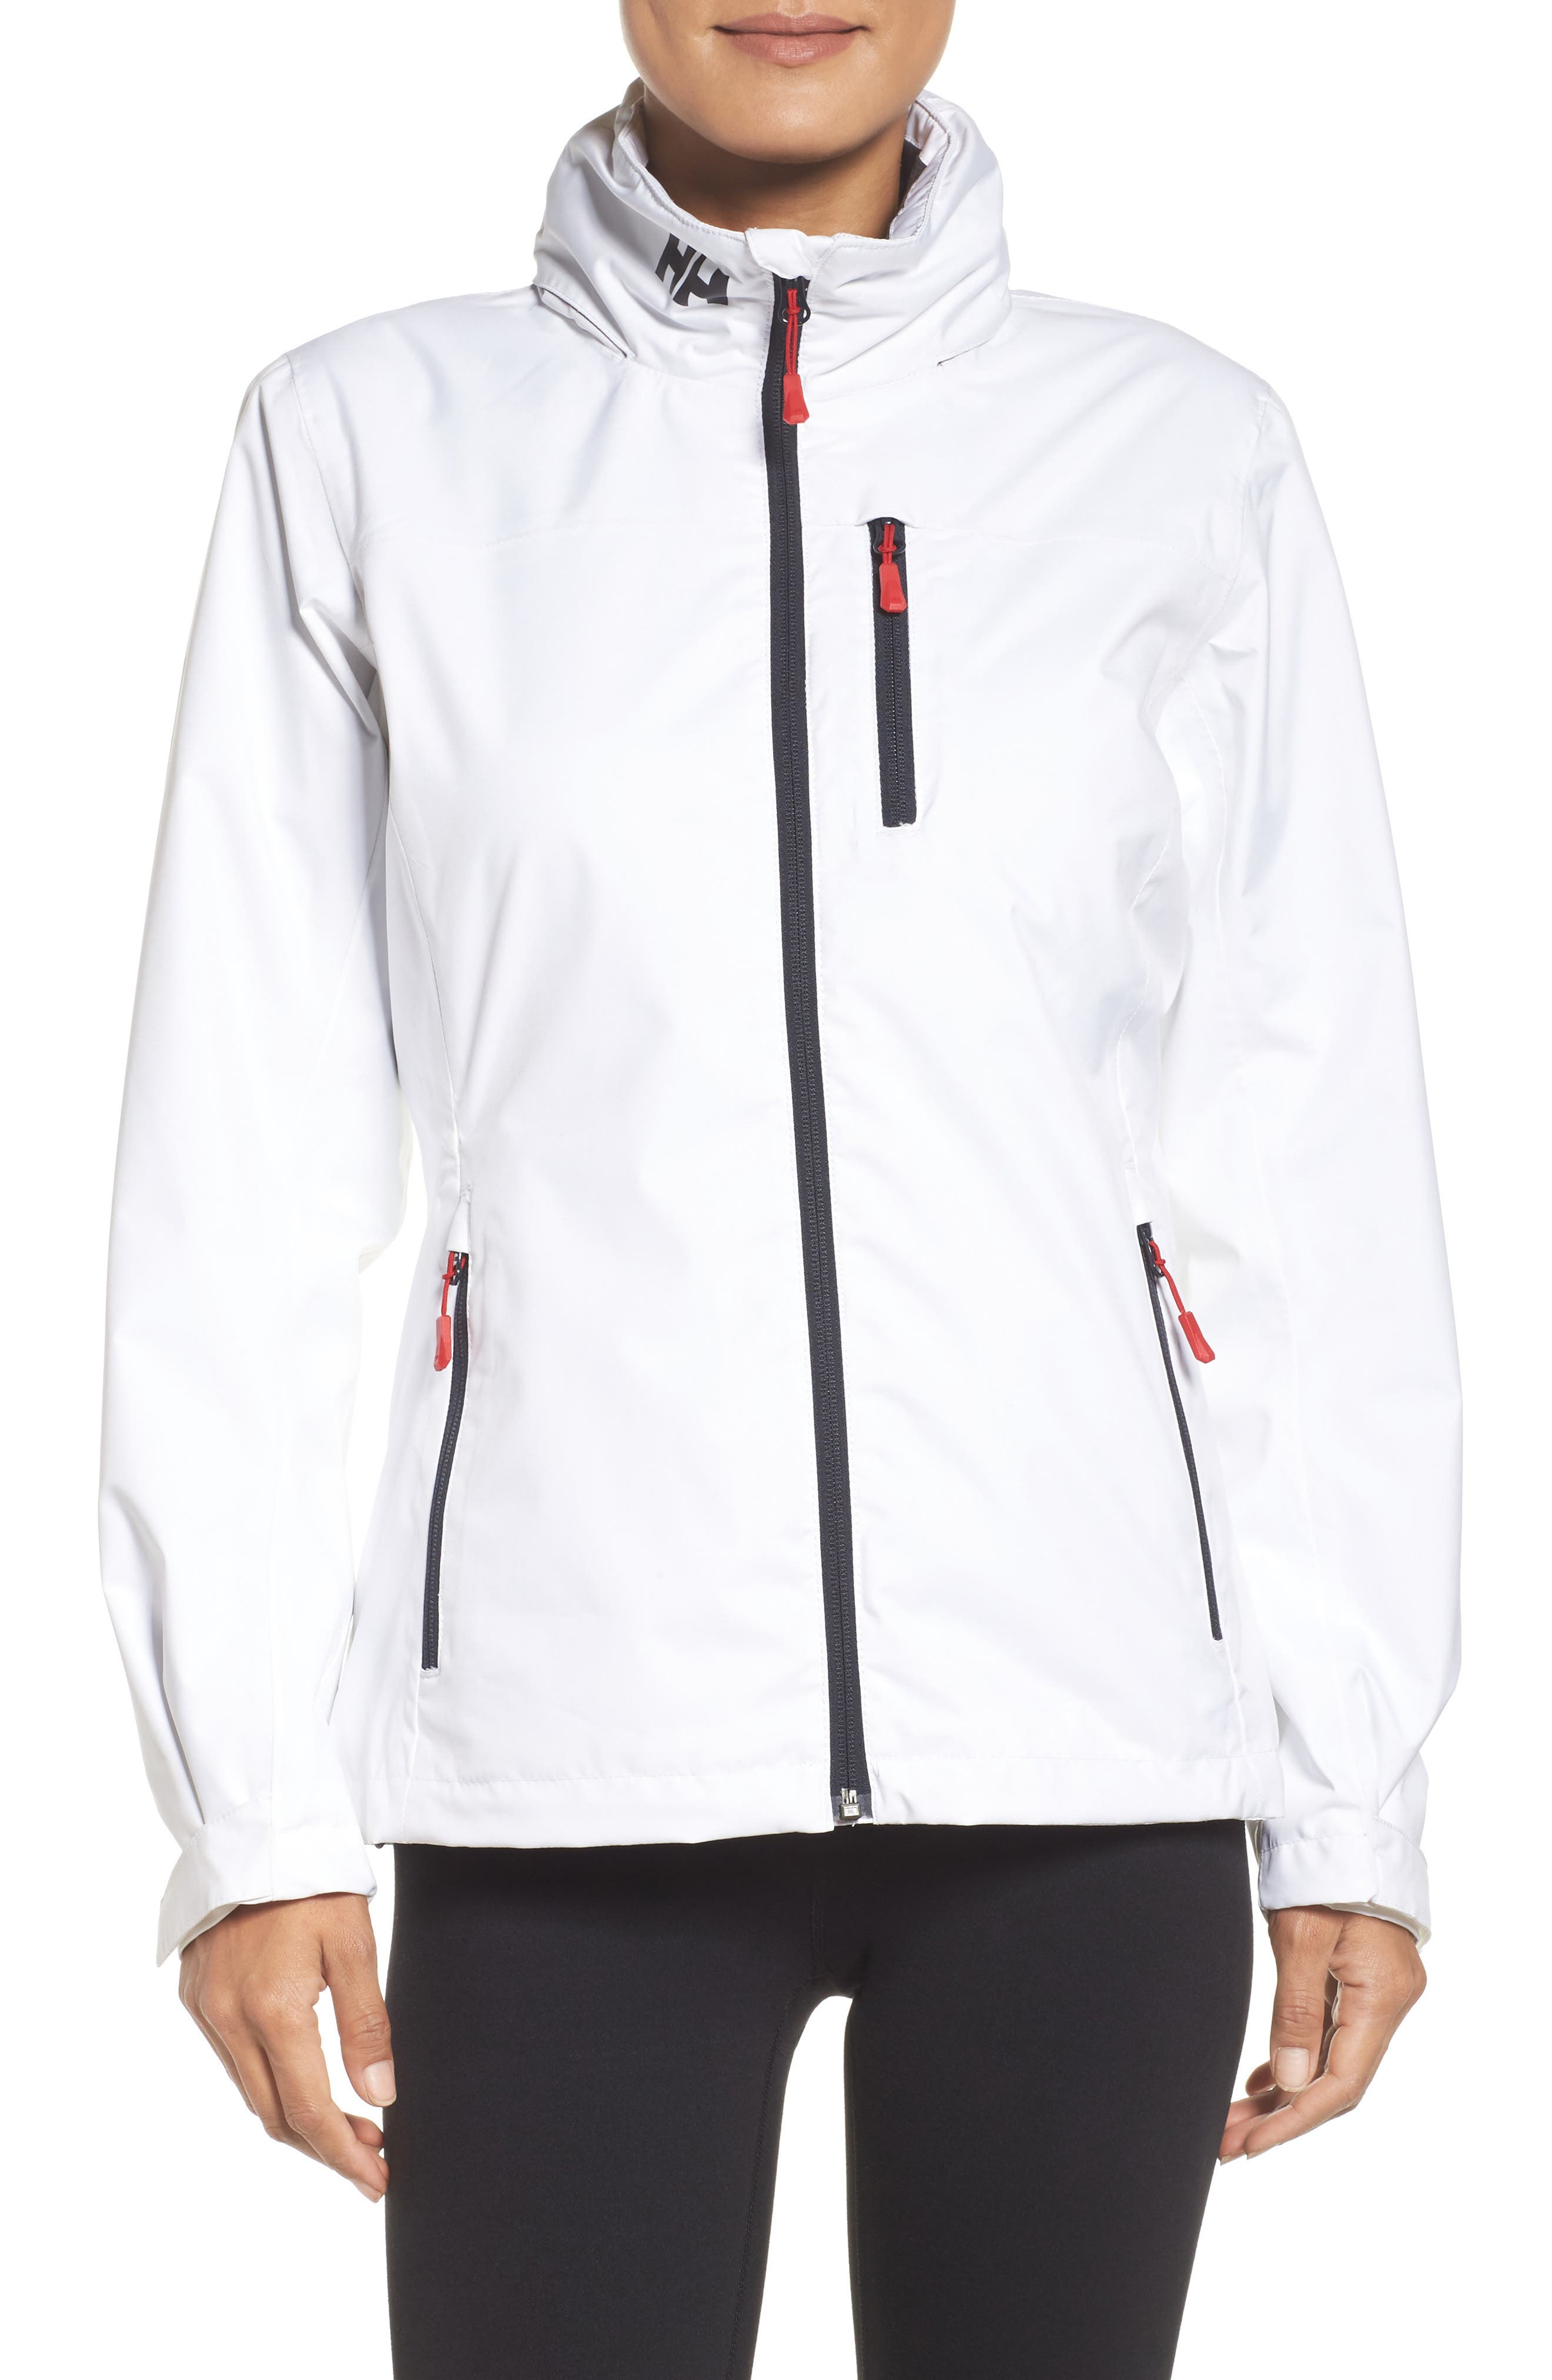 Main Image - Helly Hansen Crew Waterproof Jacket